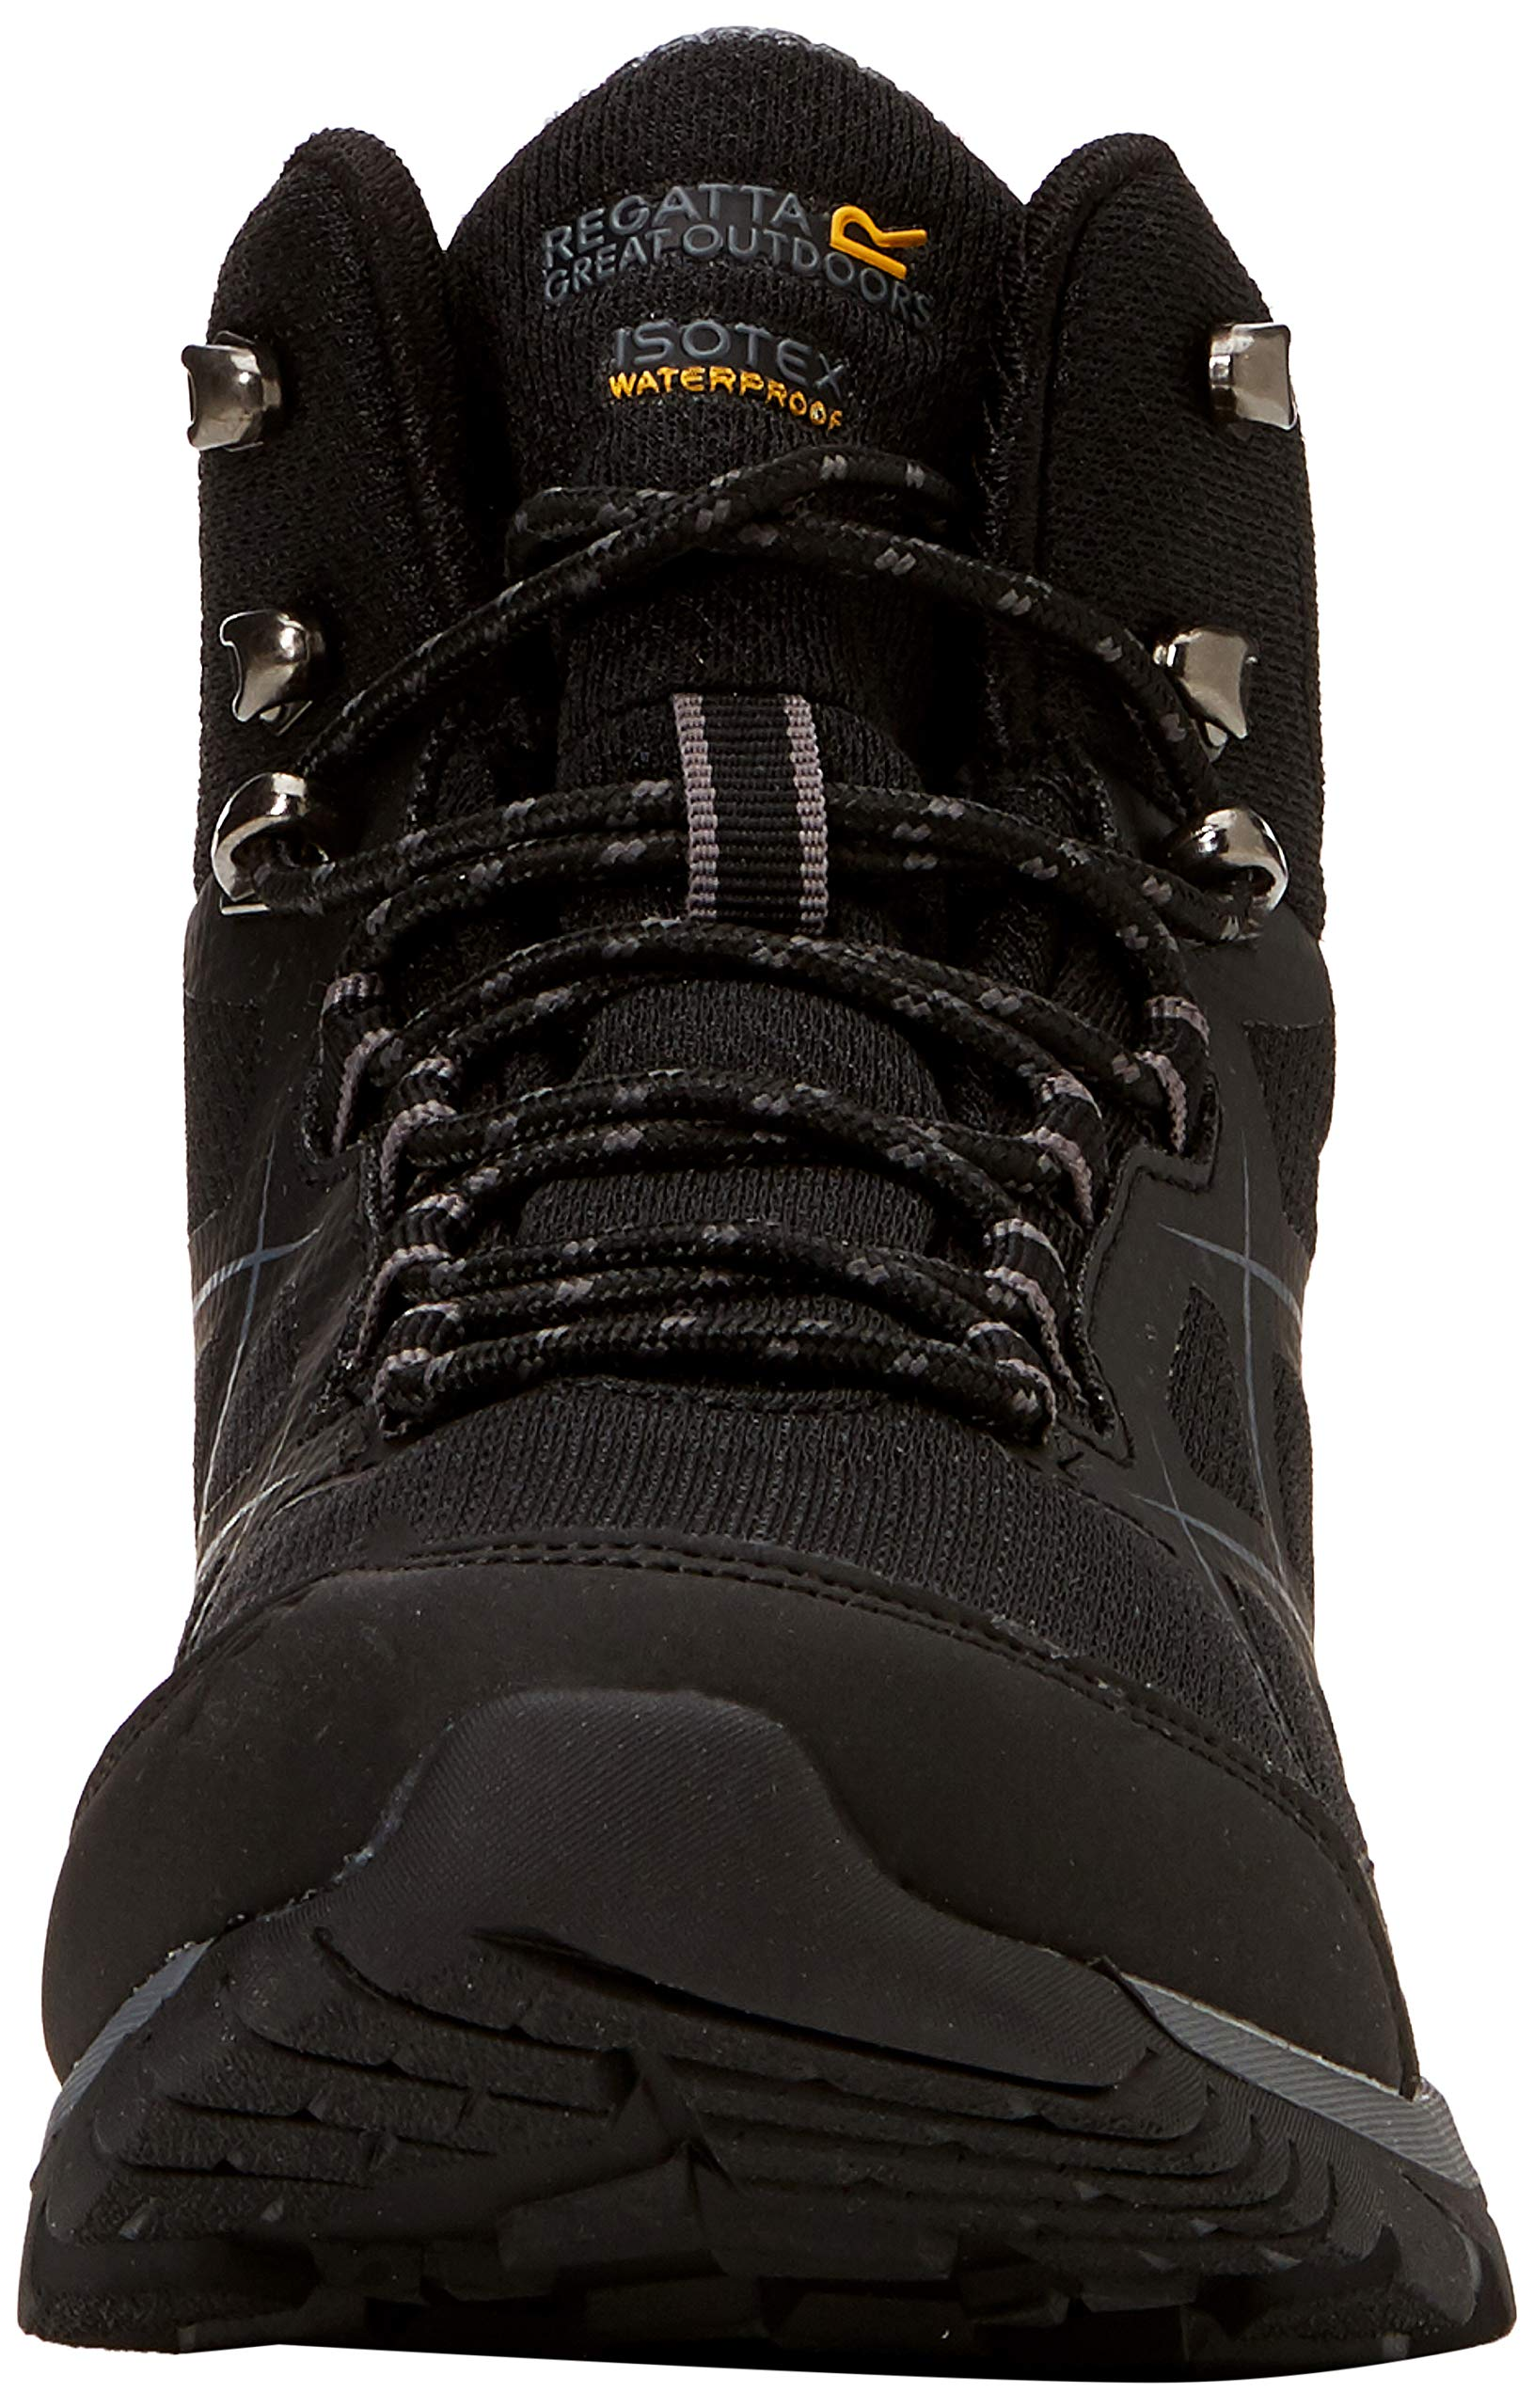 81S0SeYEPdL - Regatta Kota Mid, Men's's High Rise Hiking Boots